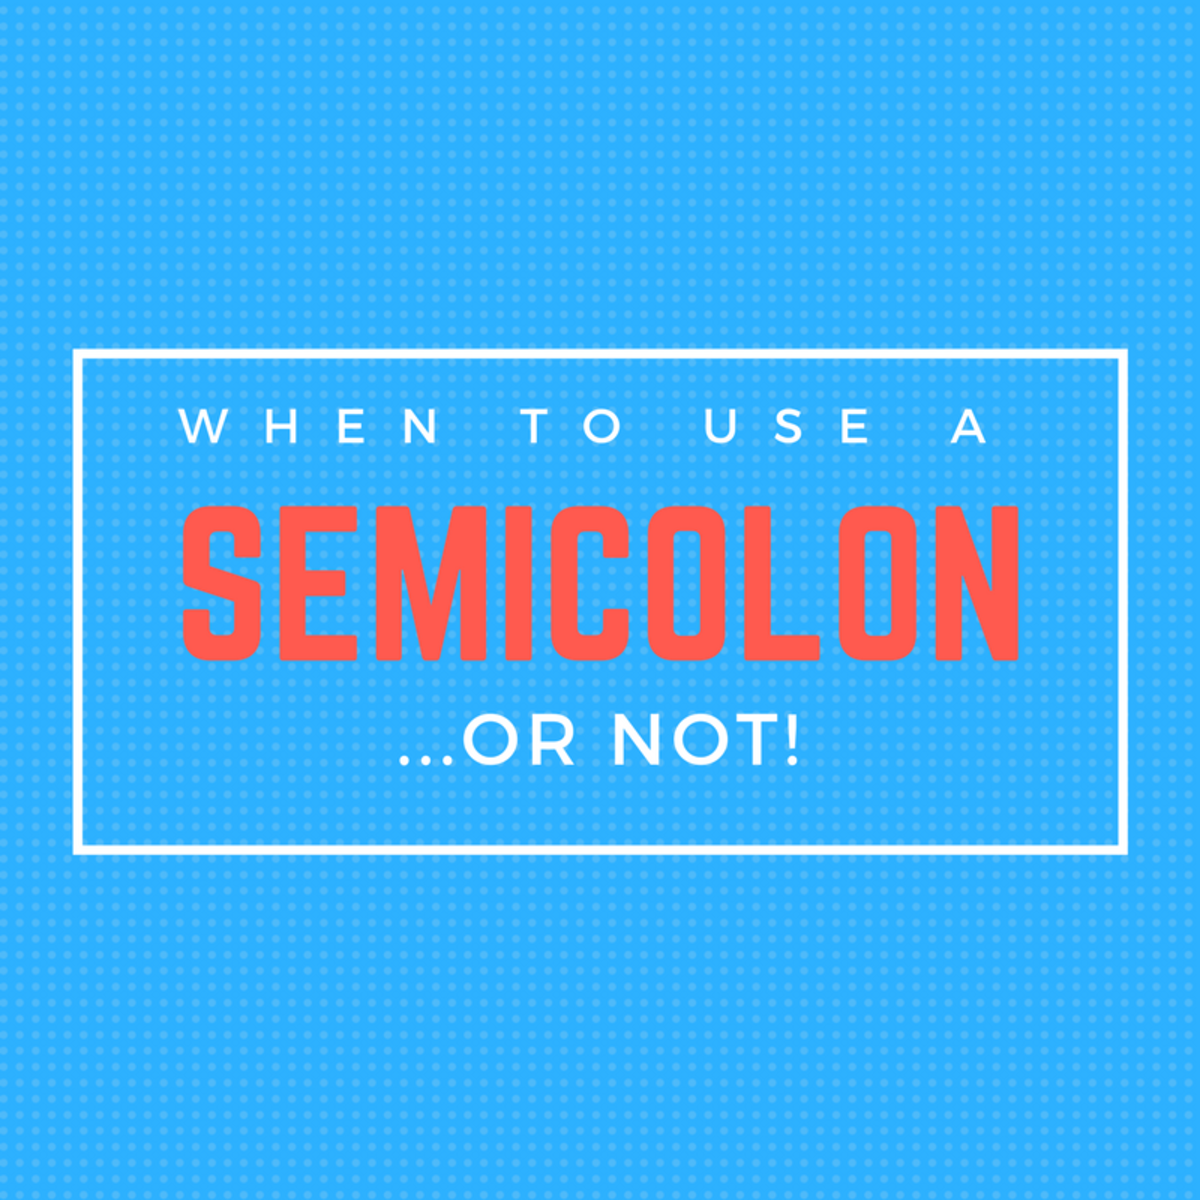 When to Use a Semicolon...or Not